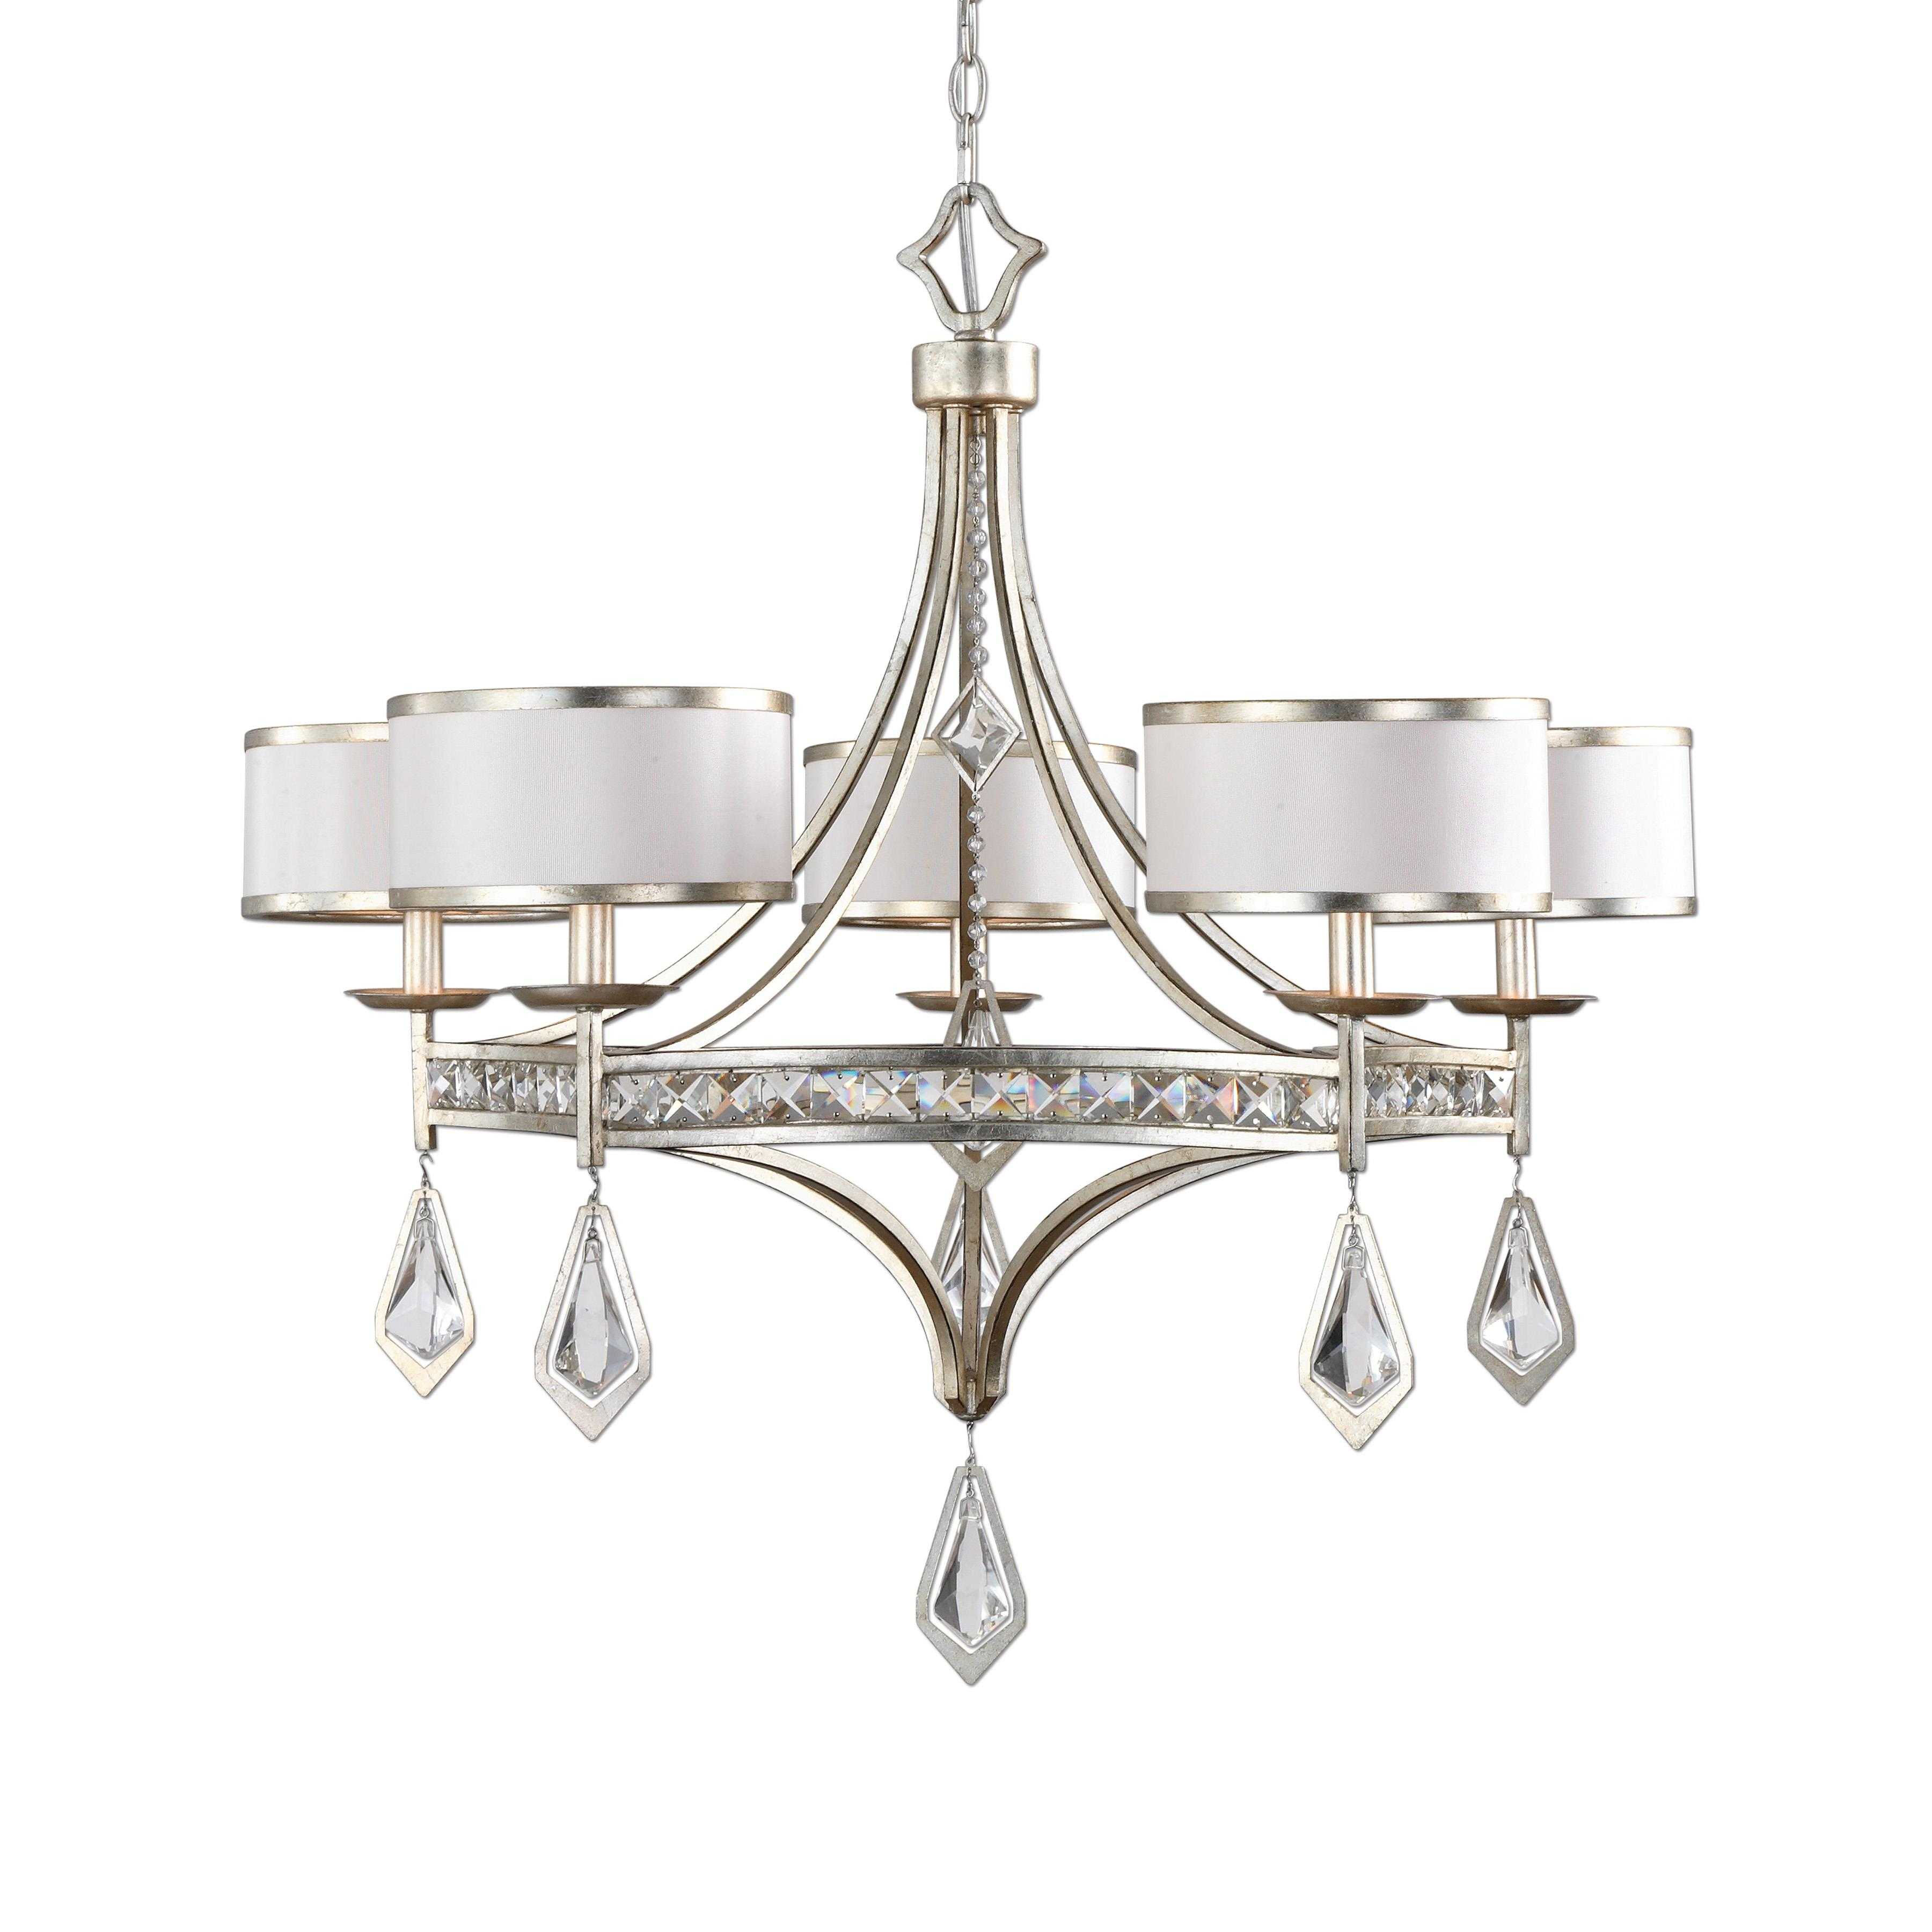 Uttermost Lighting Fixtures Tamworth 5 Light Silver Champagne Chandelier - Item Number: 21268